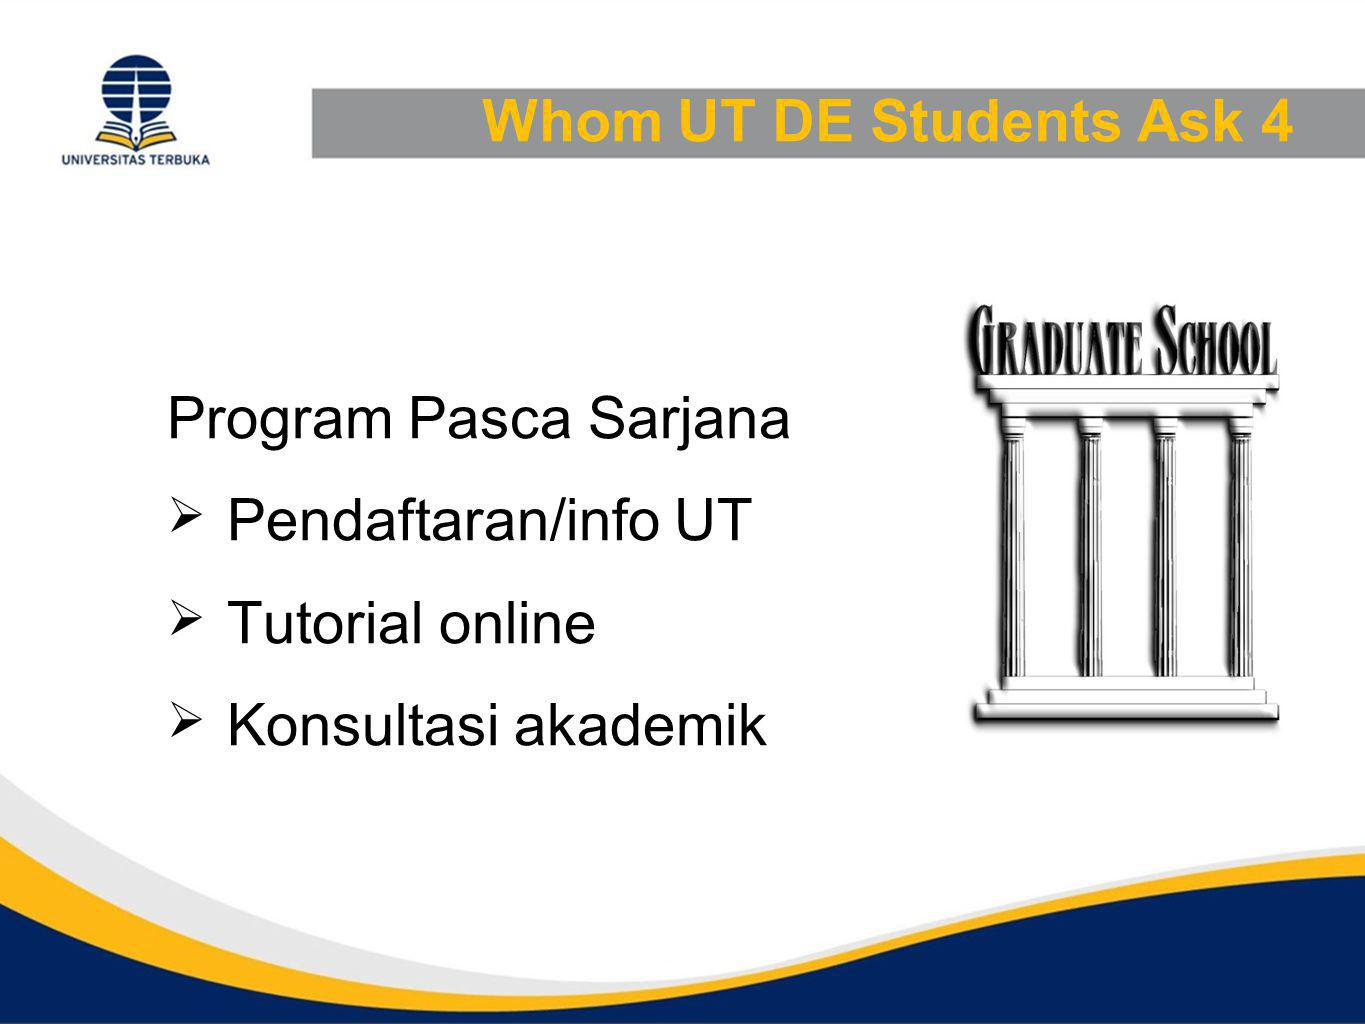 Whom UT DE Students Ask 4 Program Pasca Sarjana. Pendaftaran/info UT.